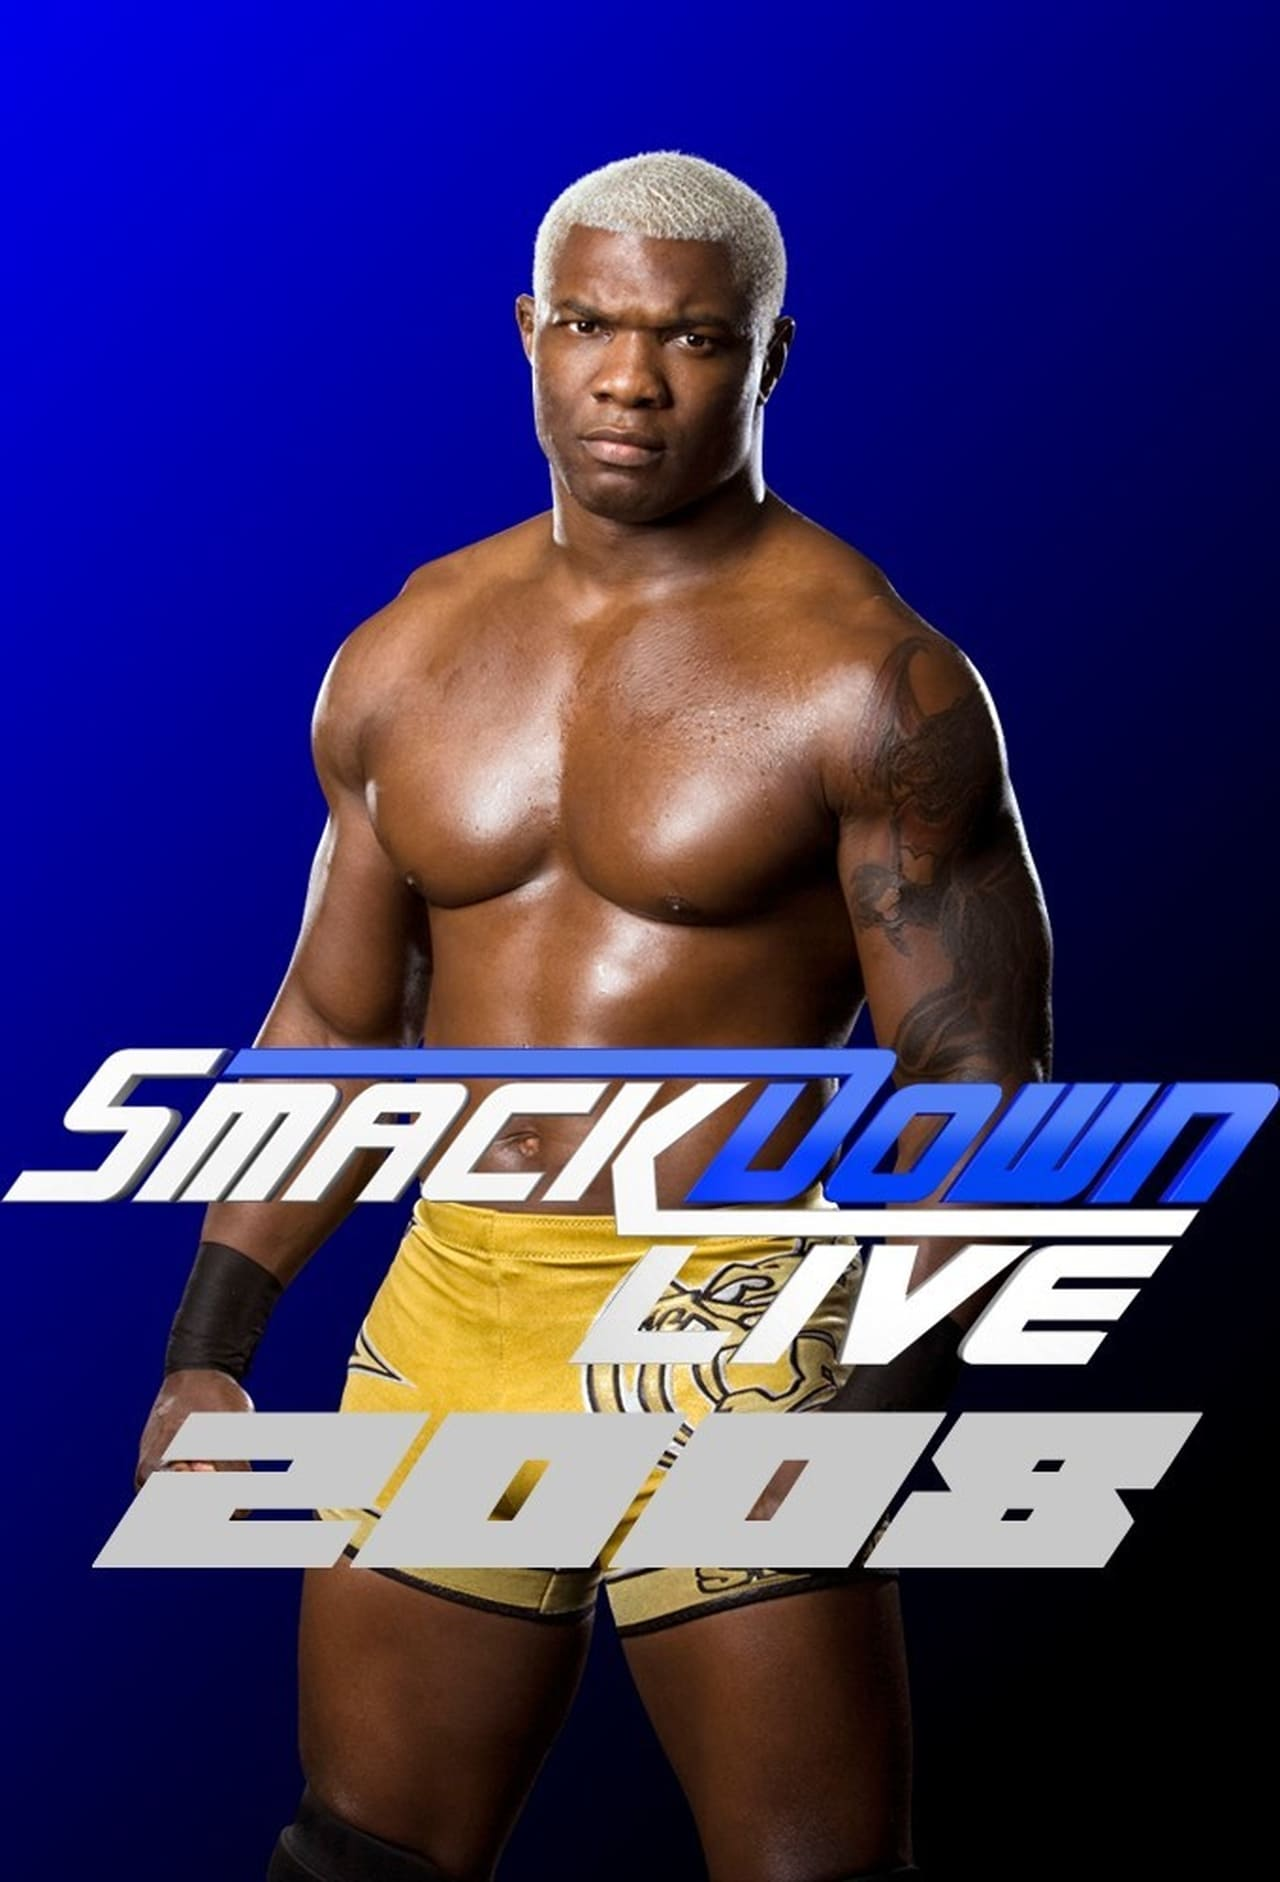 Putlocker Wwe Smackdown Live Season 10 (2008)